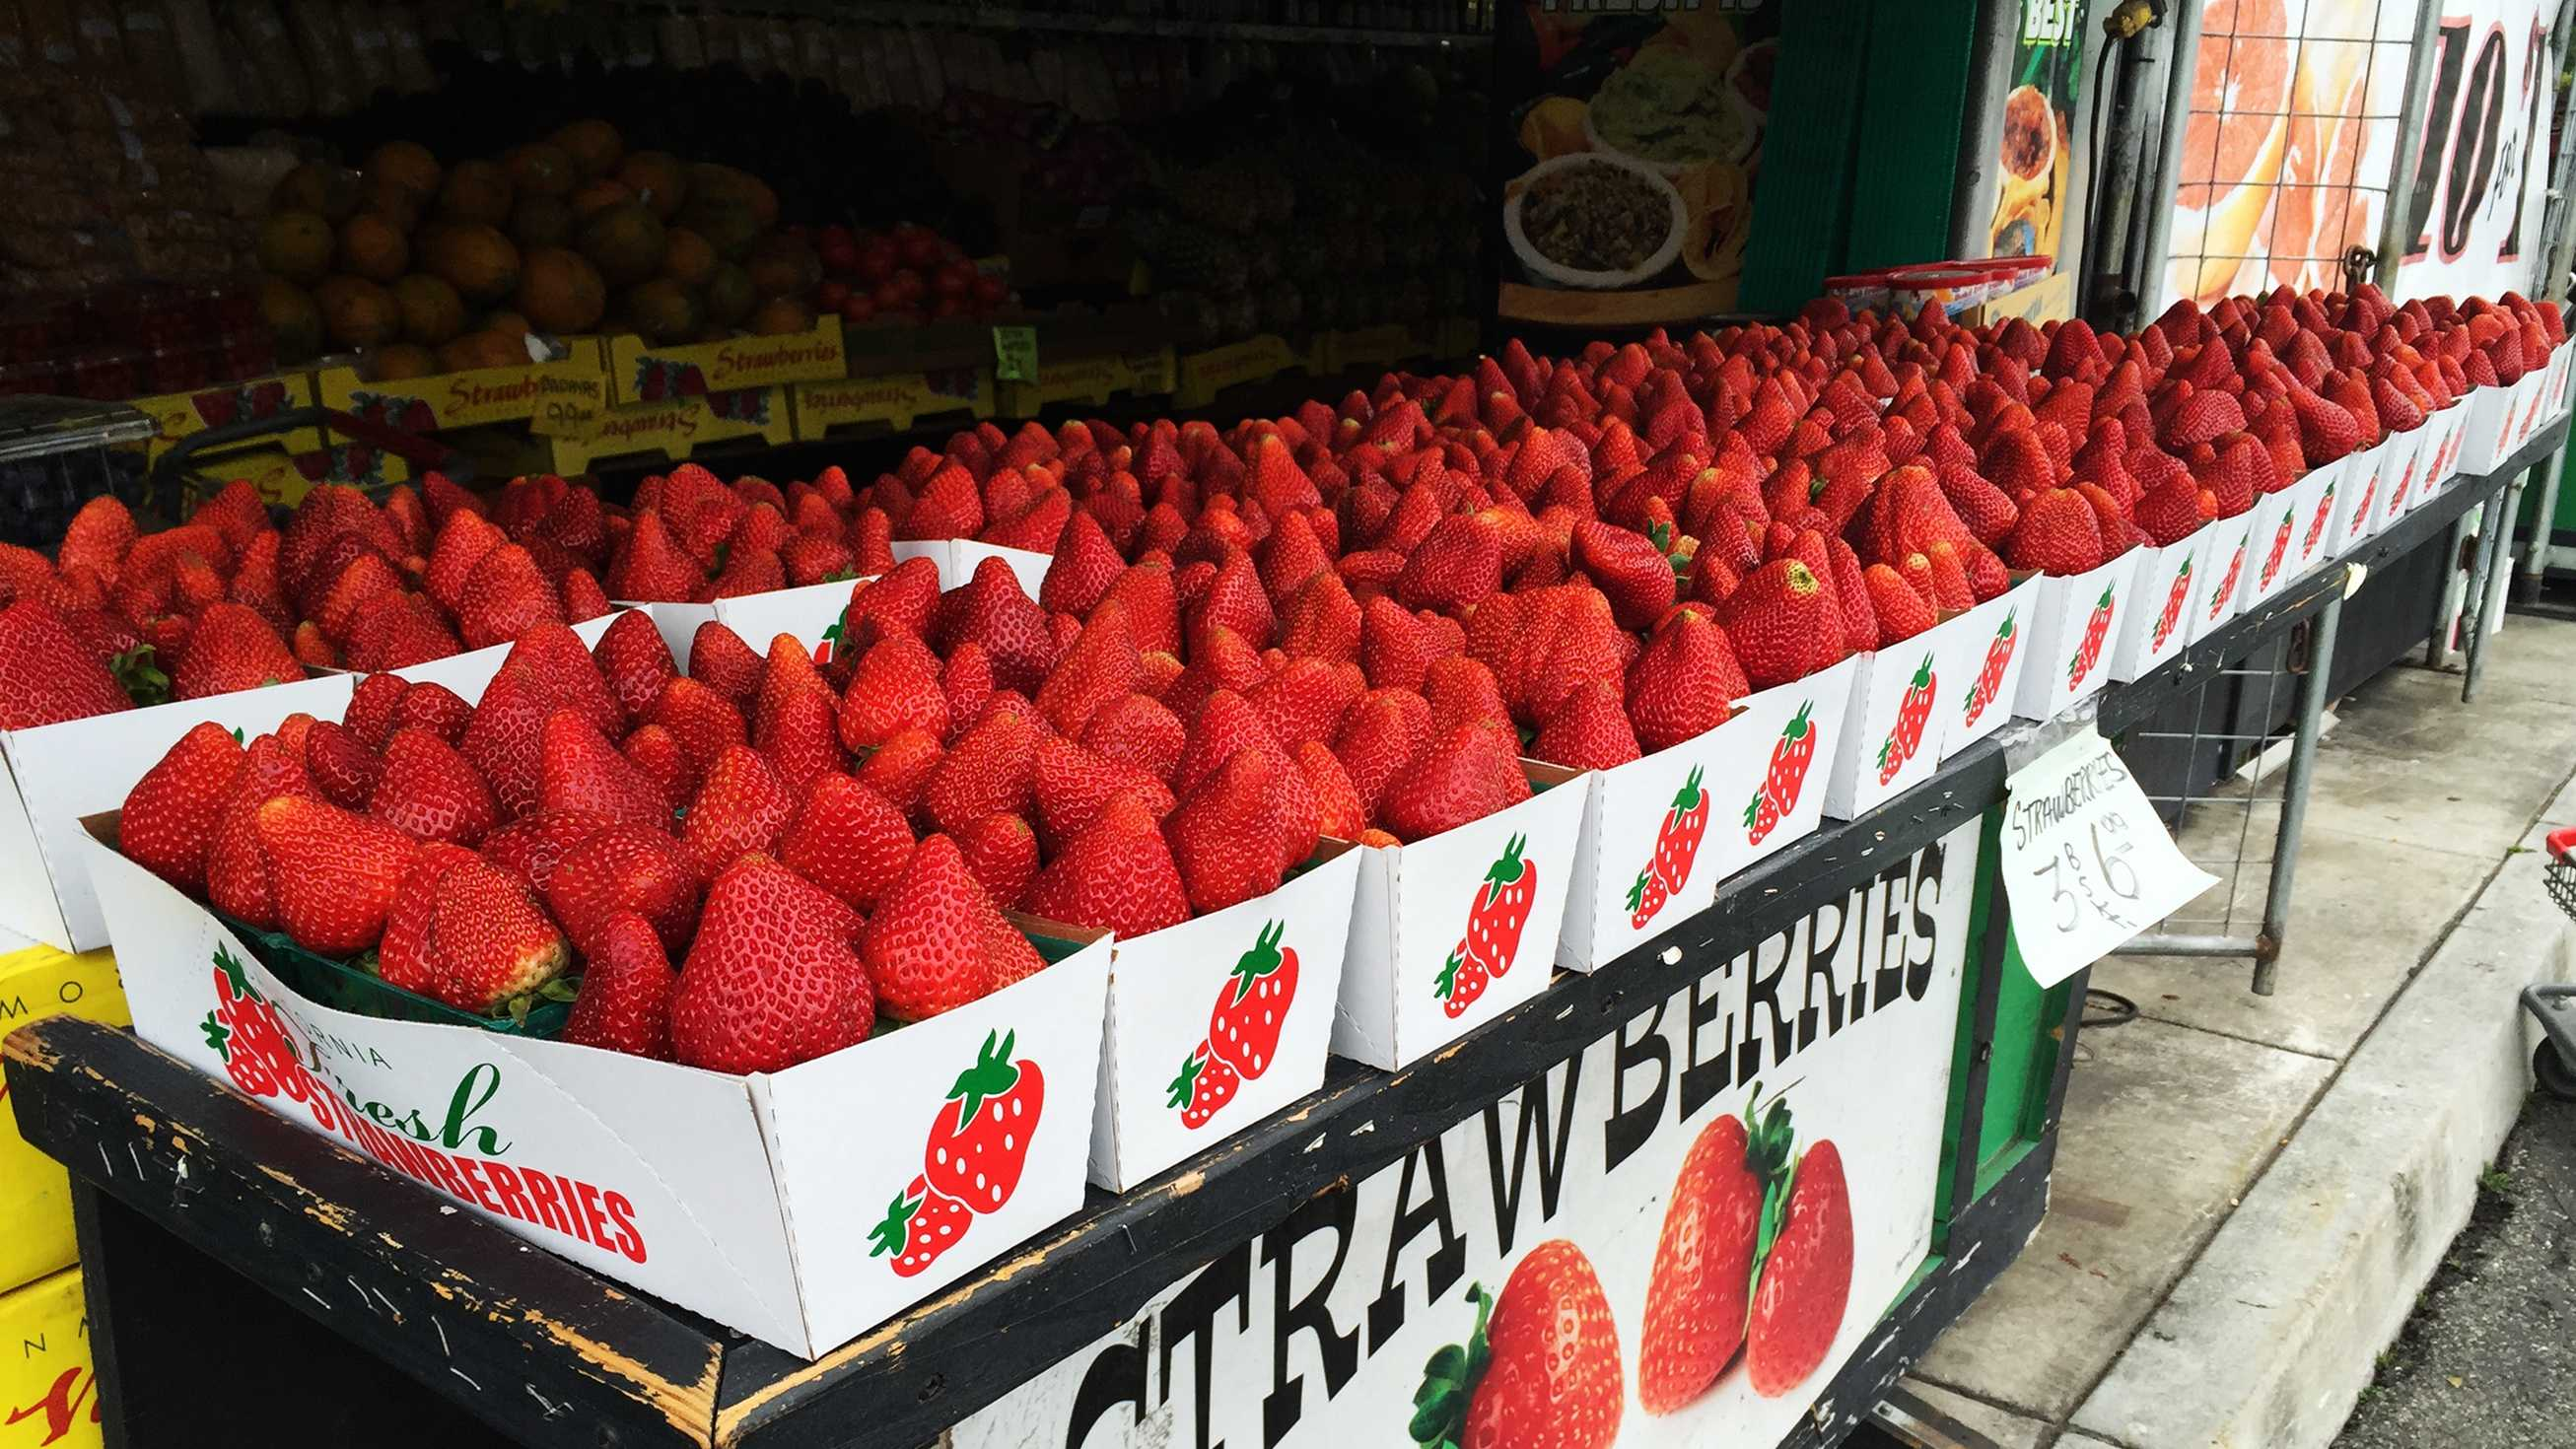 Strawberries for sale at a farm stand in Moss Landing.